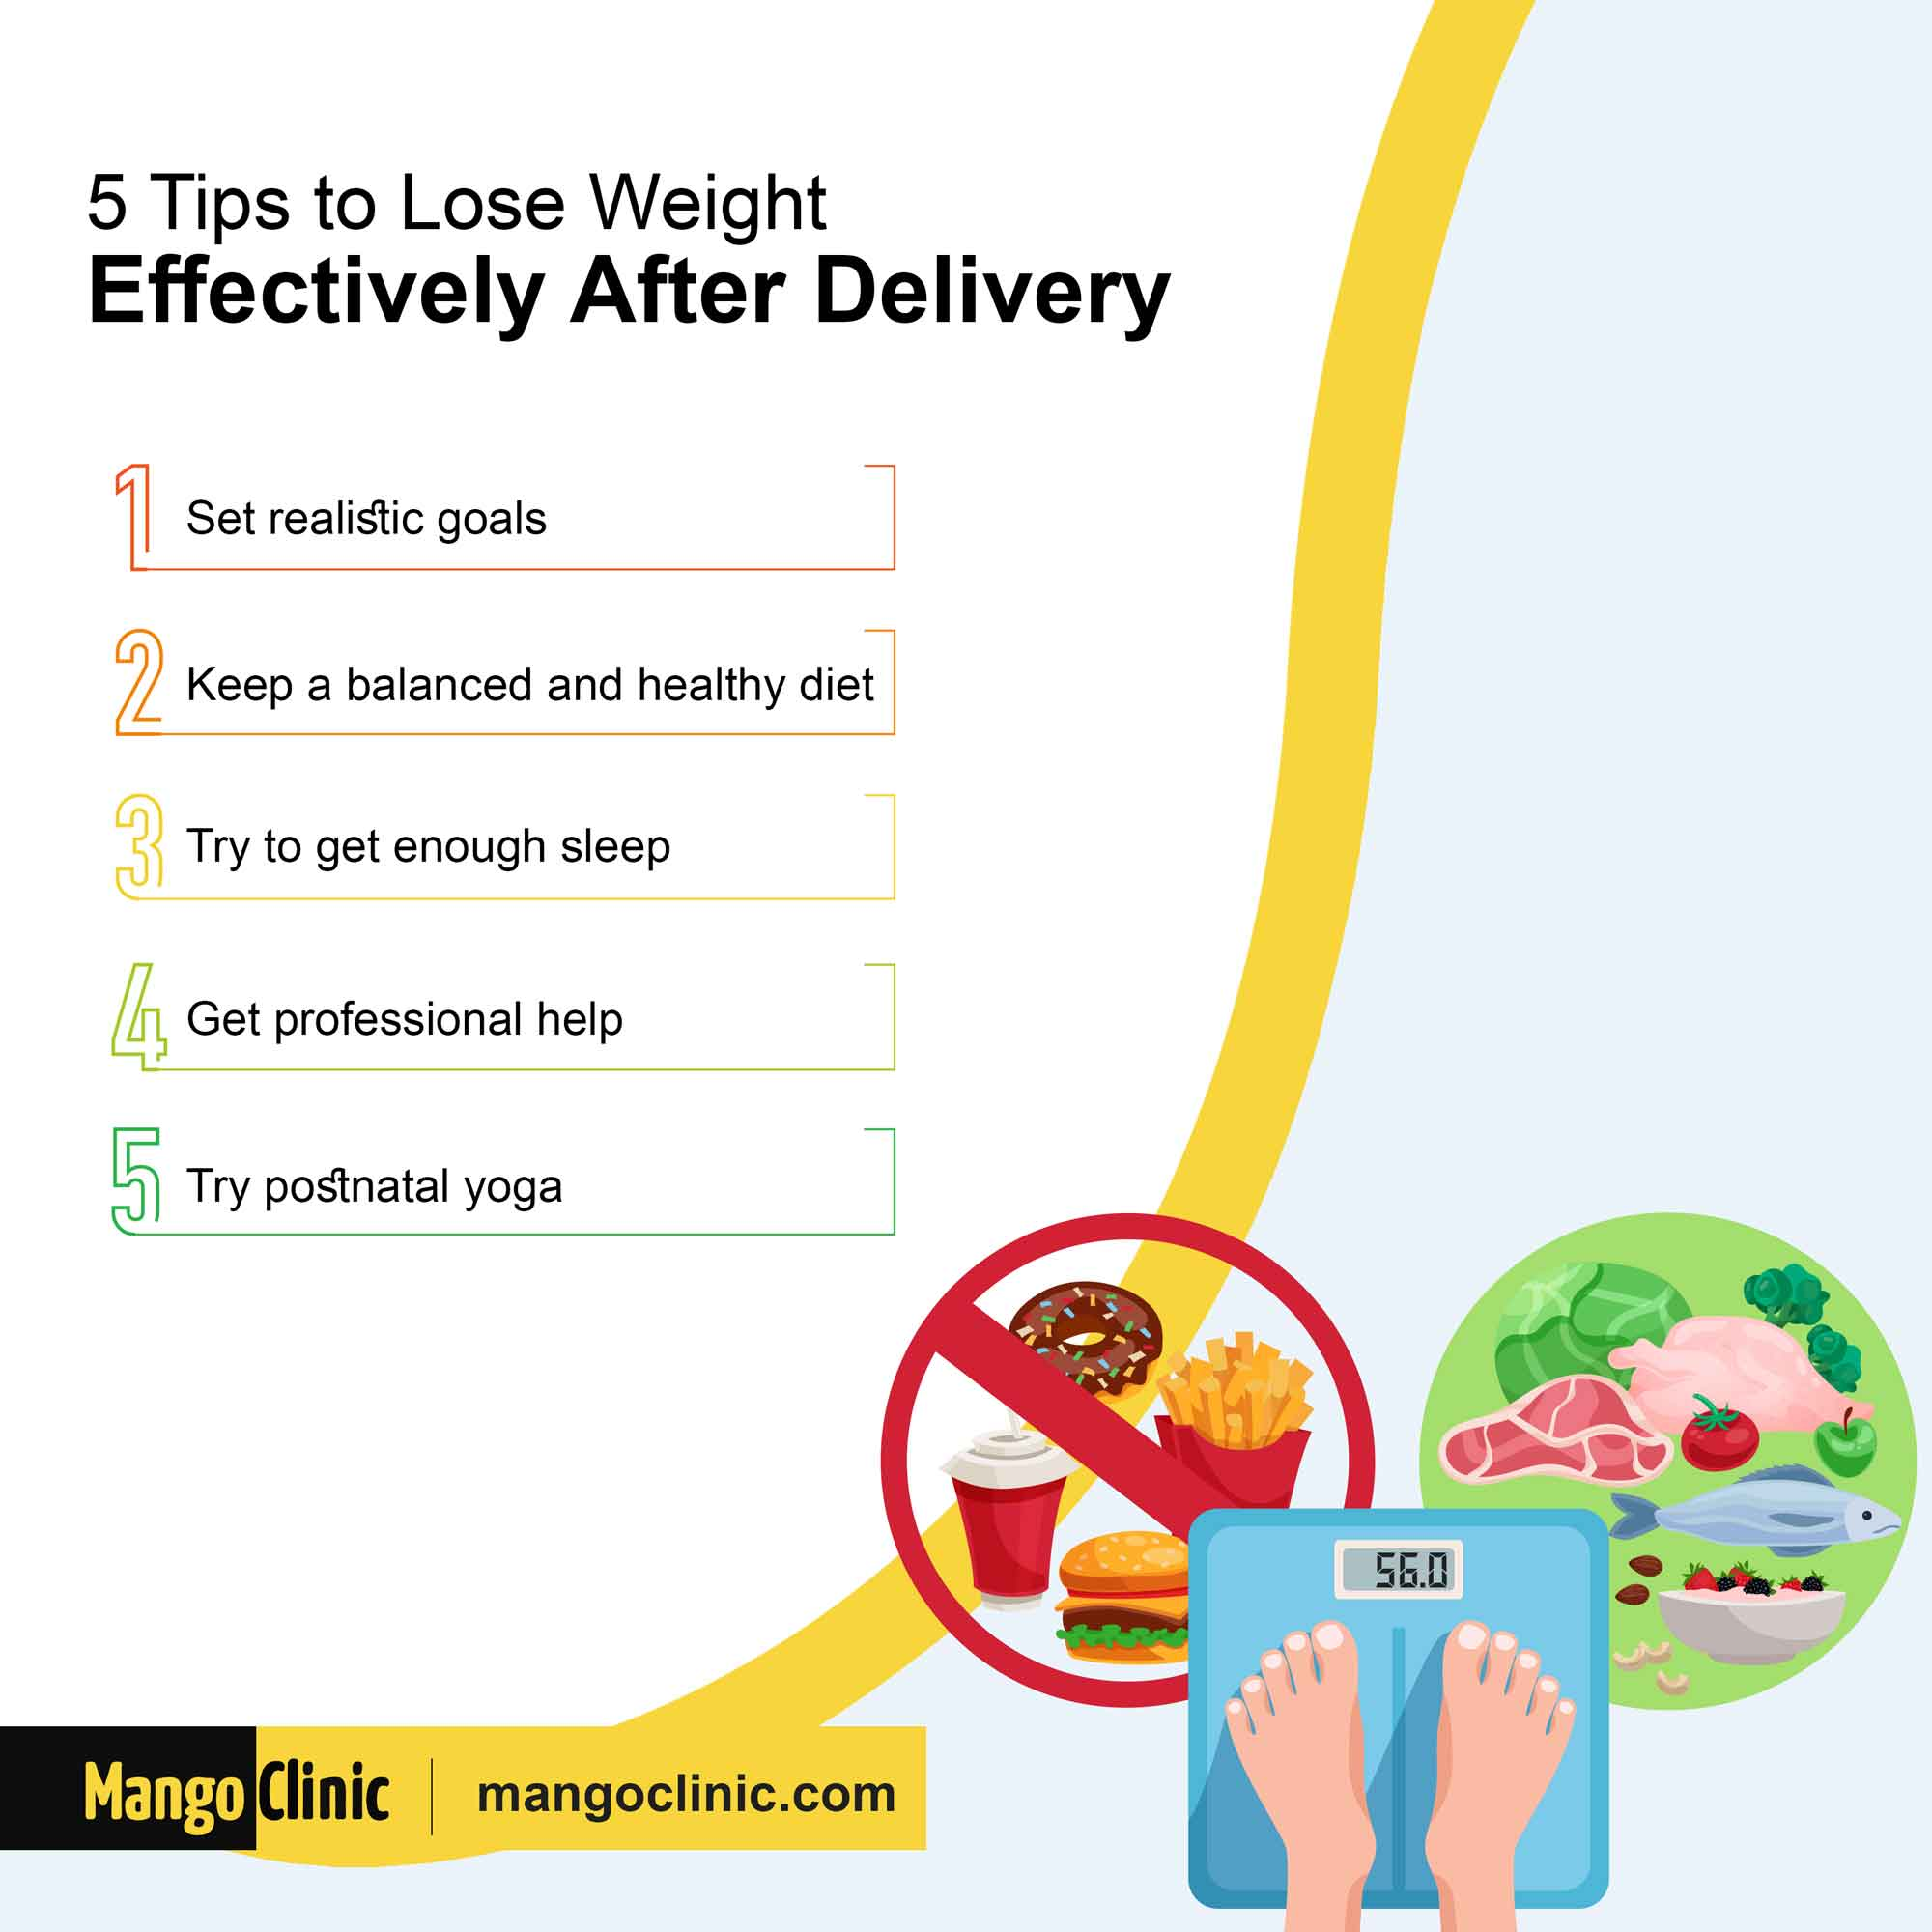 Tips to lose weight after delivery